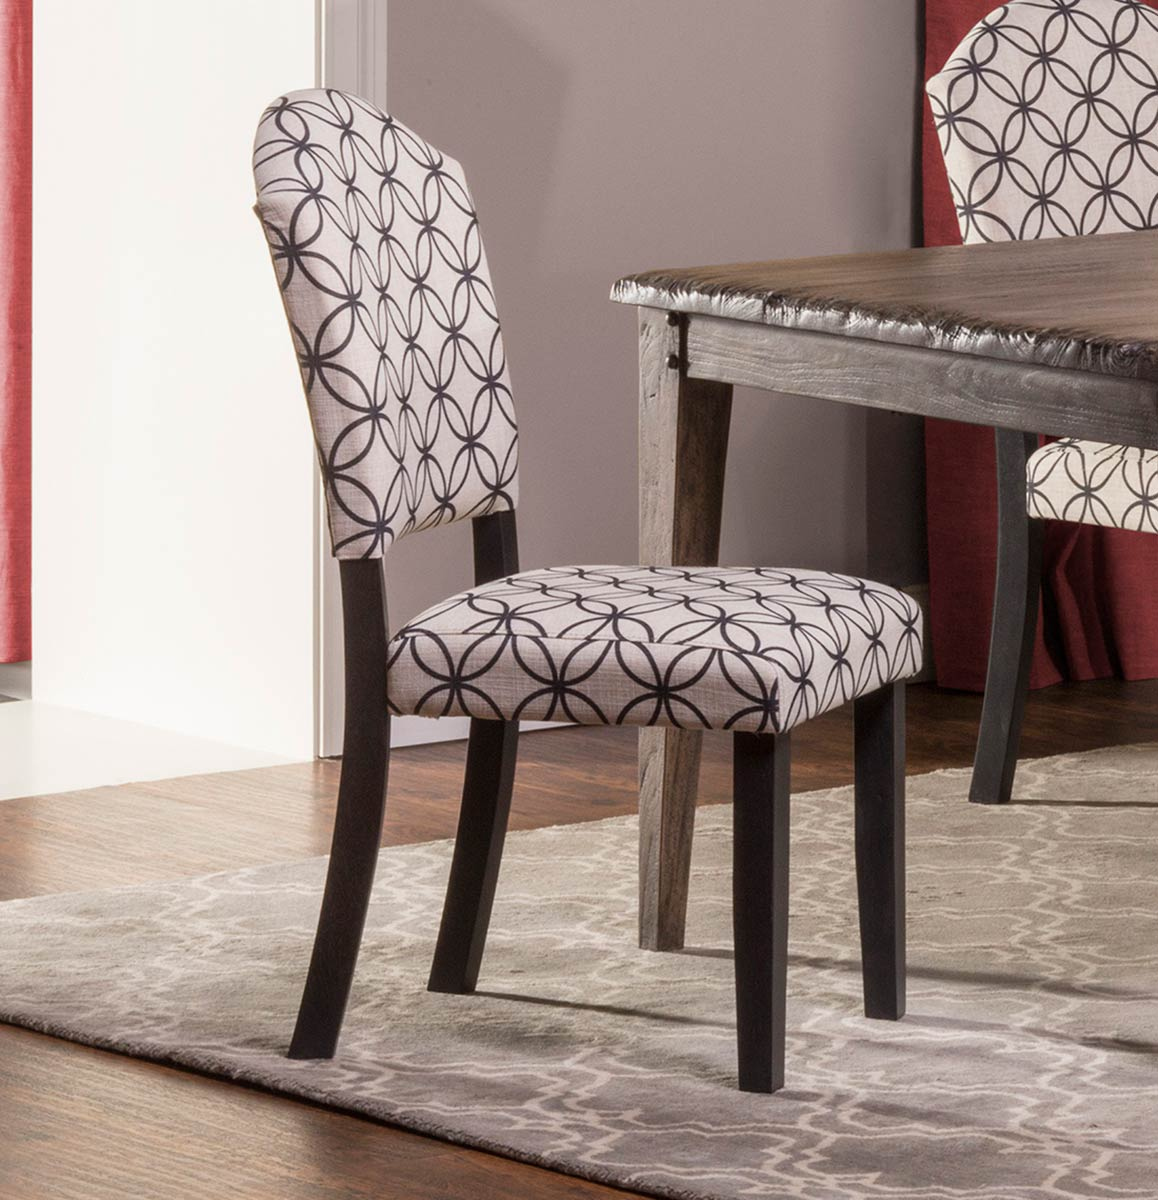 distressed black dining chairs buy folding hillsdale lorient parsons chair bristol off white with circle pattern hd 5676 801 at homelement com